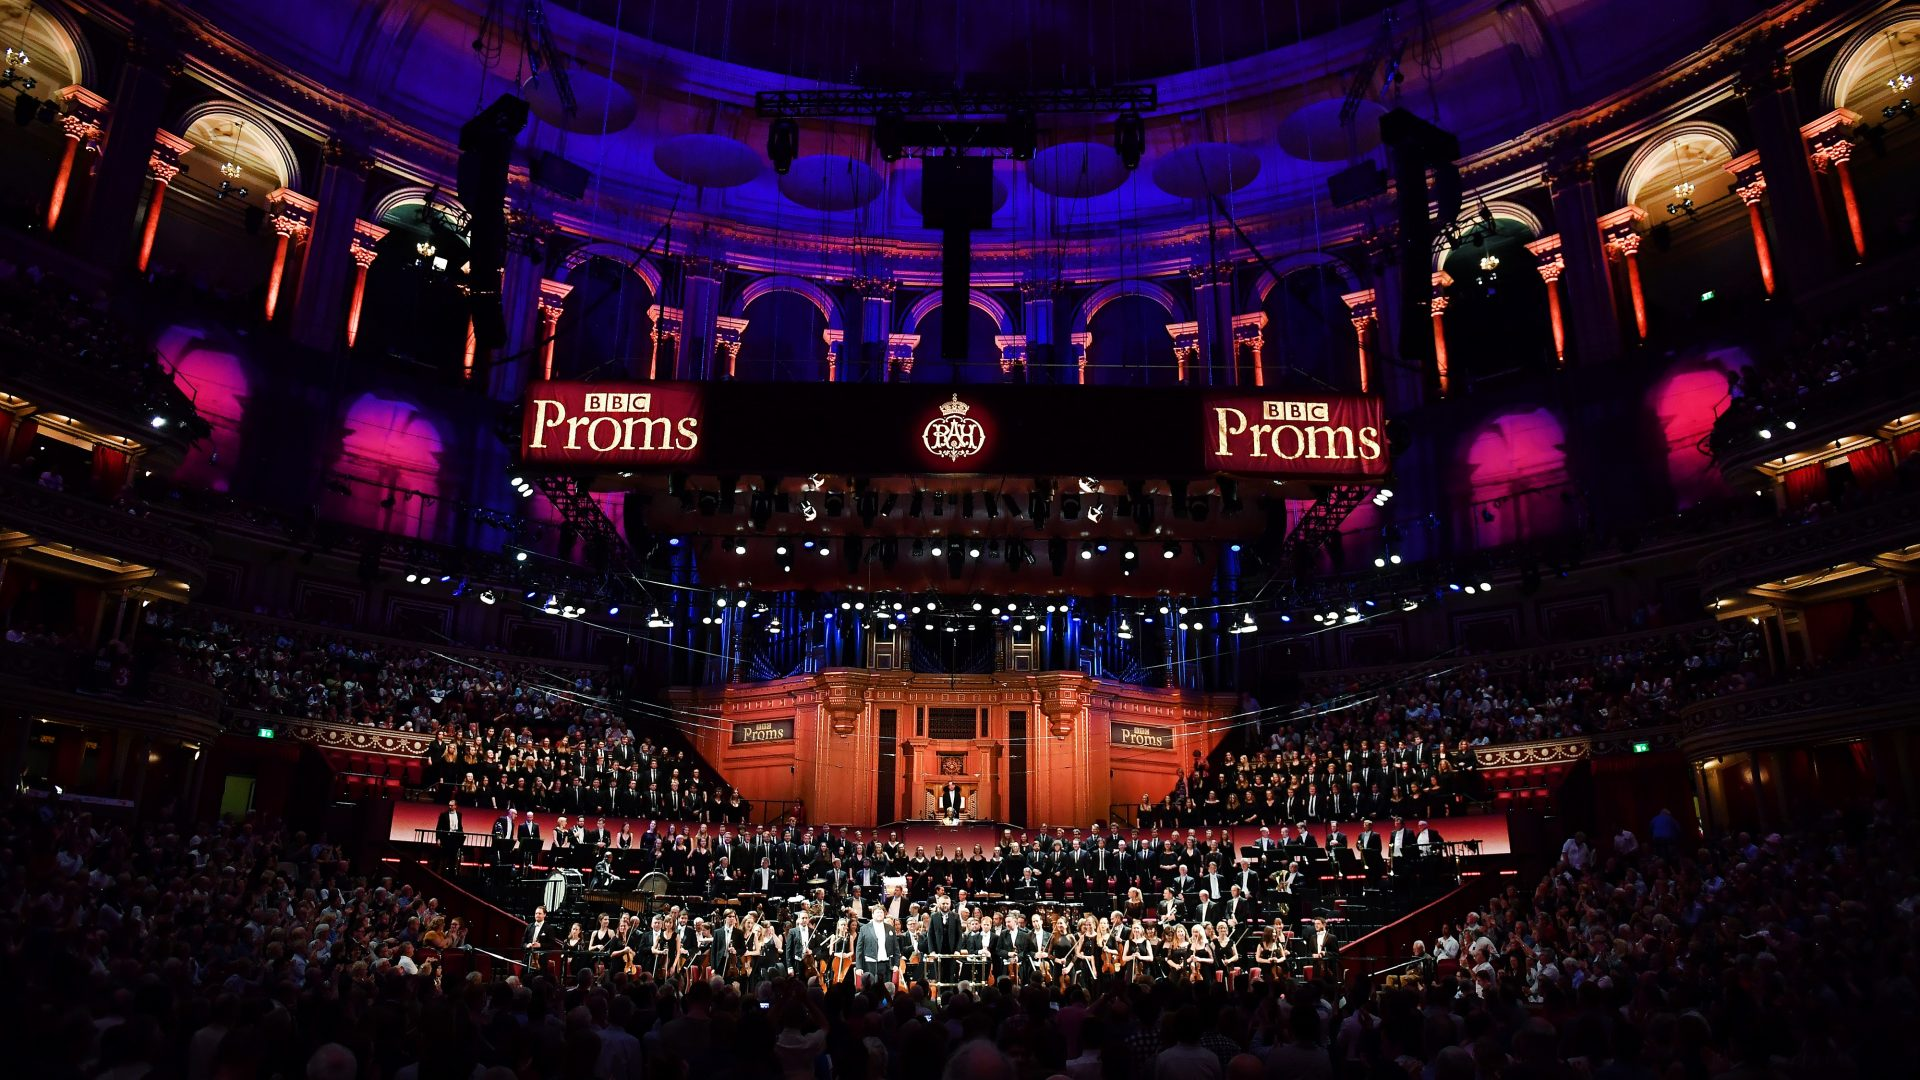 Broadcasting the BSO, a picture from the BBC proms